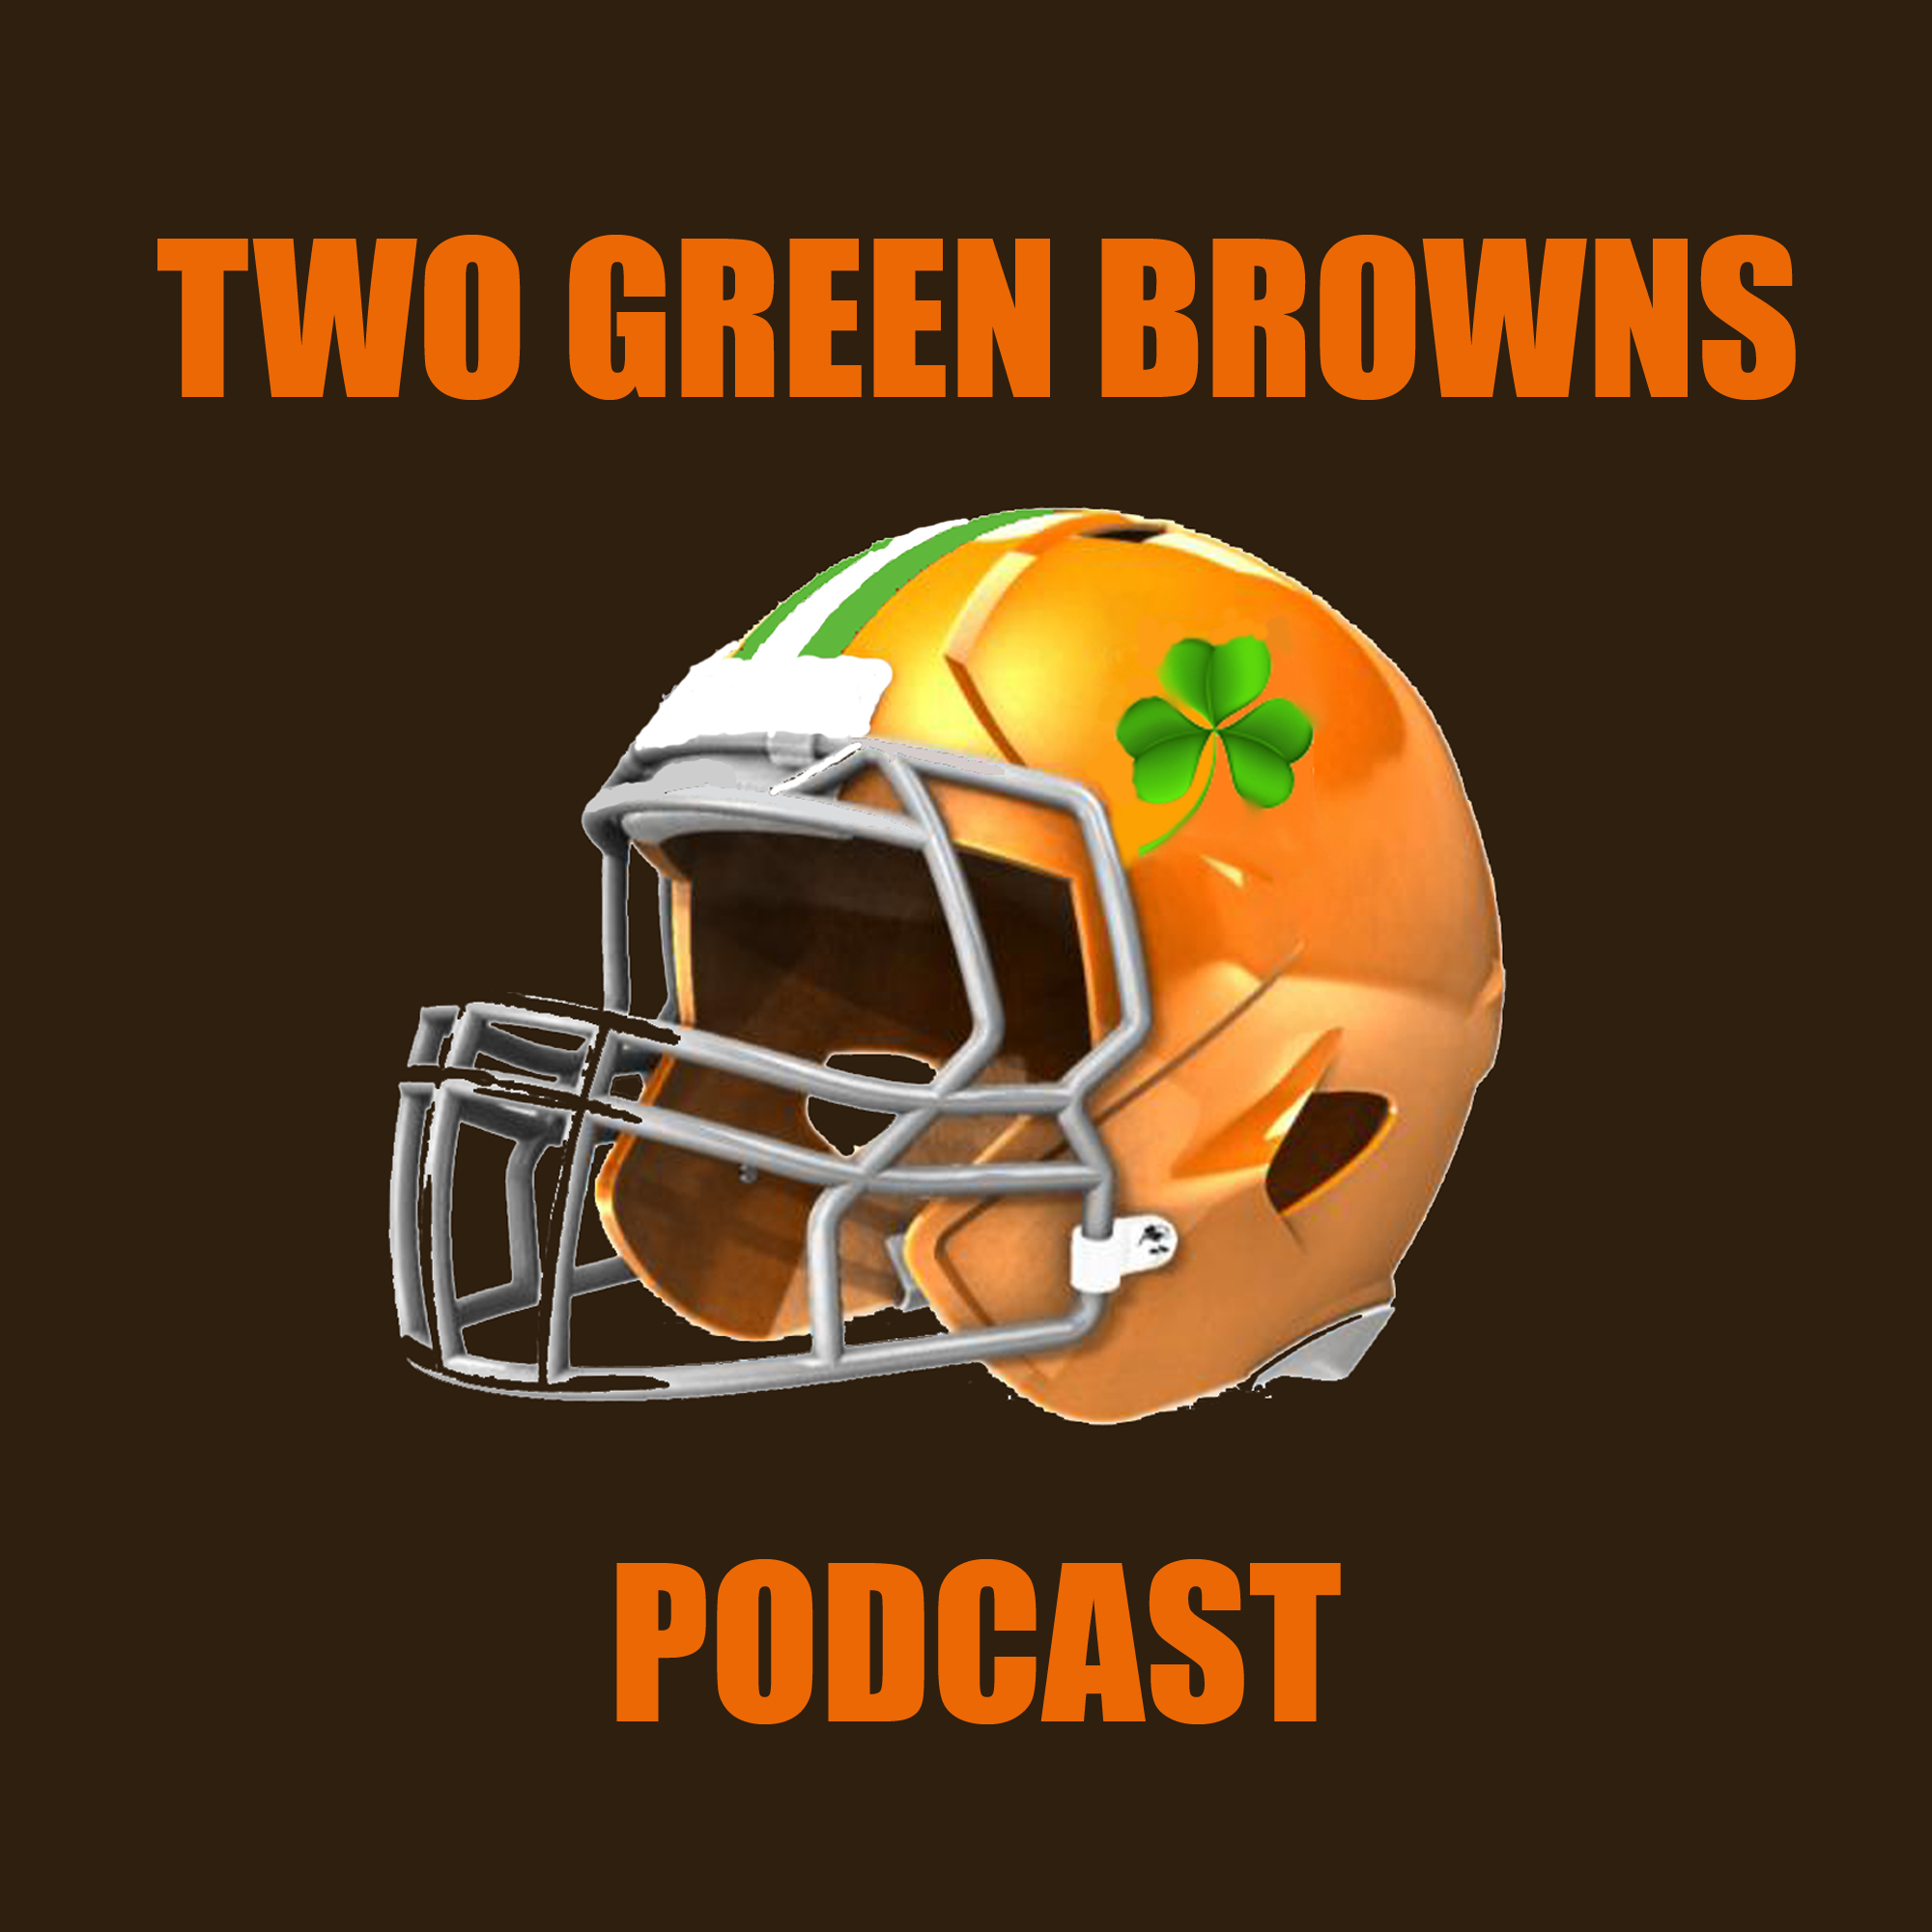 Two Green Browns Podcast